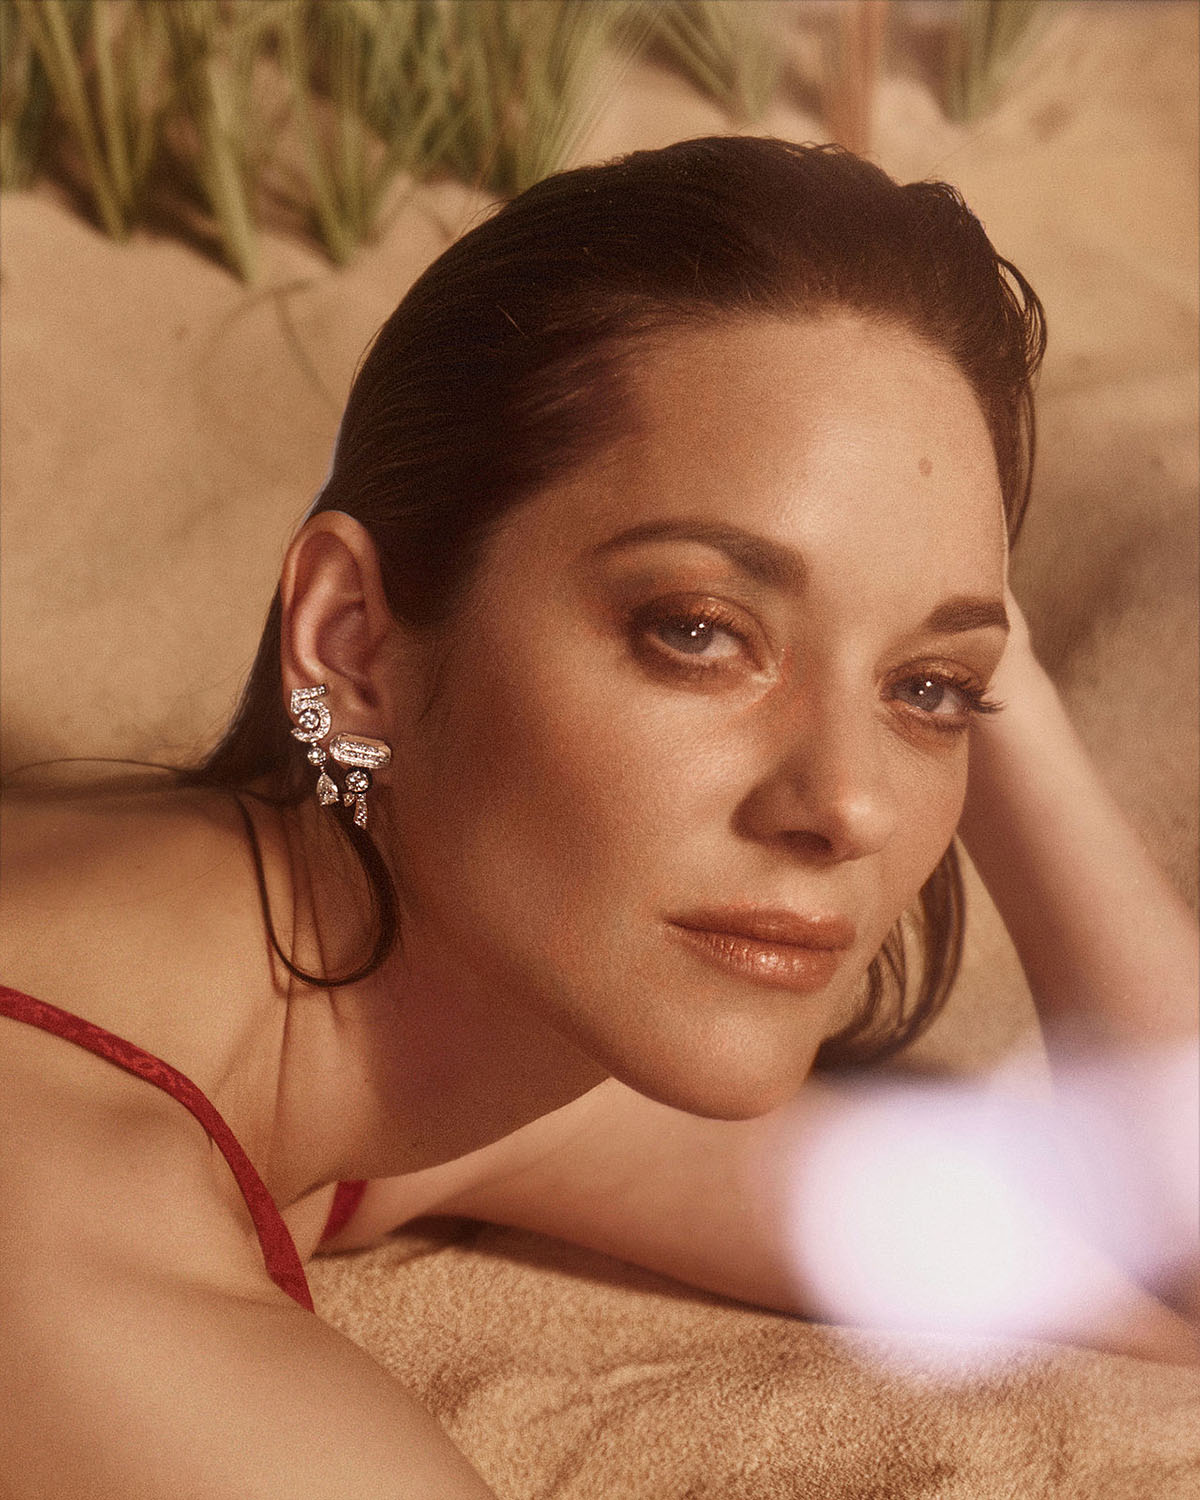 Marion Cotillard covers Marie Claire France July 2021 by Van Mossevelde + N